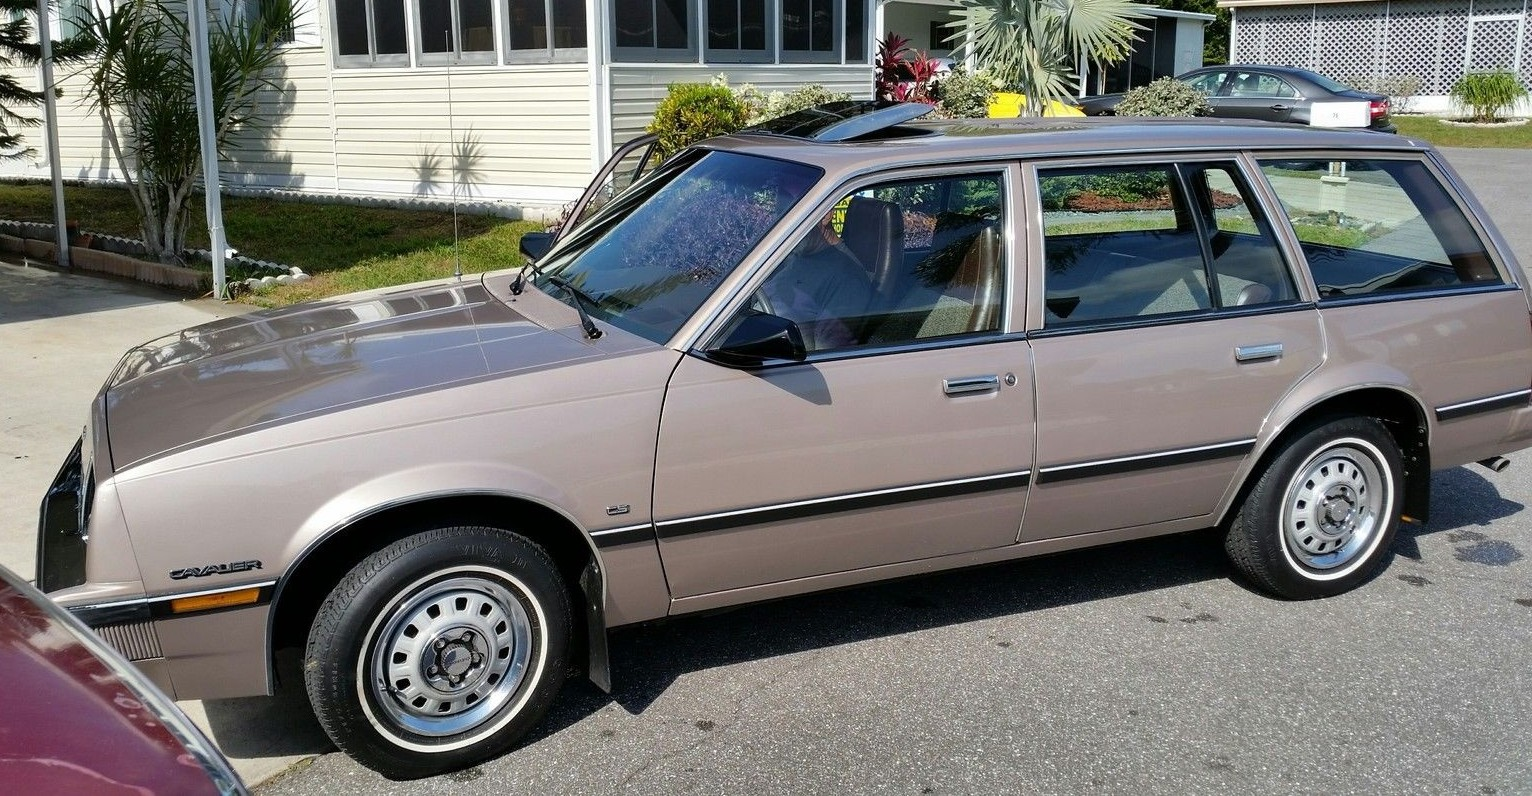 93 chevy cavalier station wagon